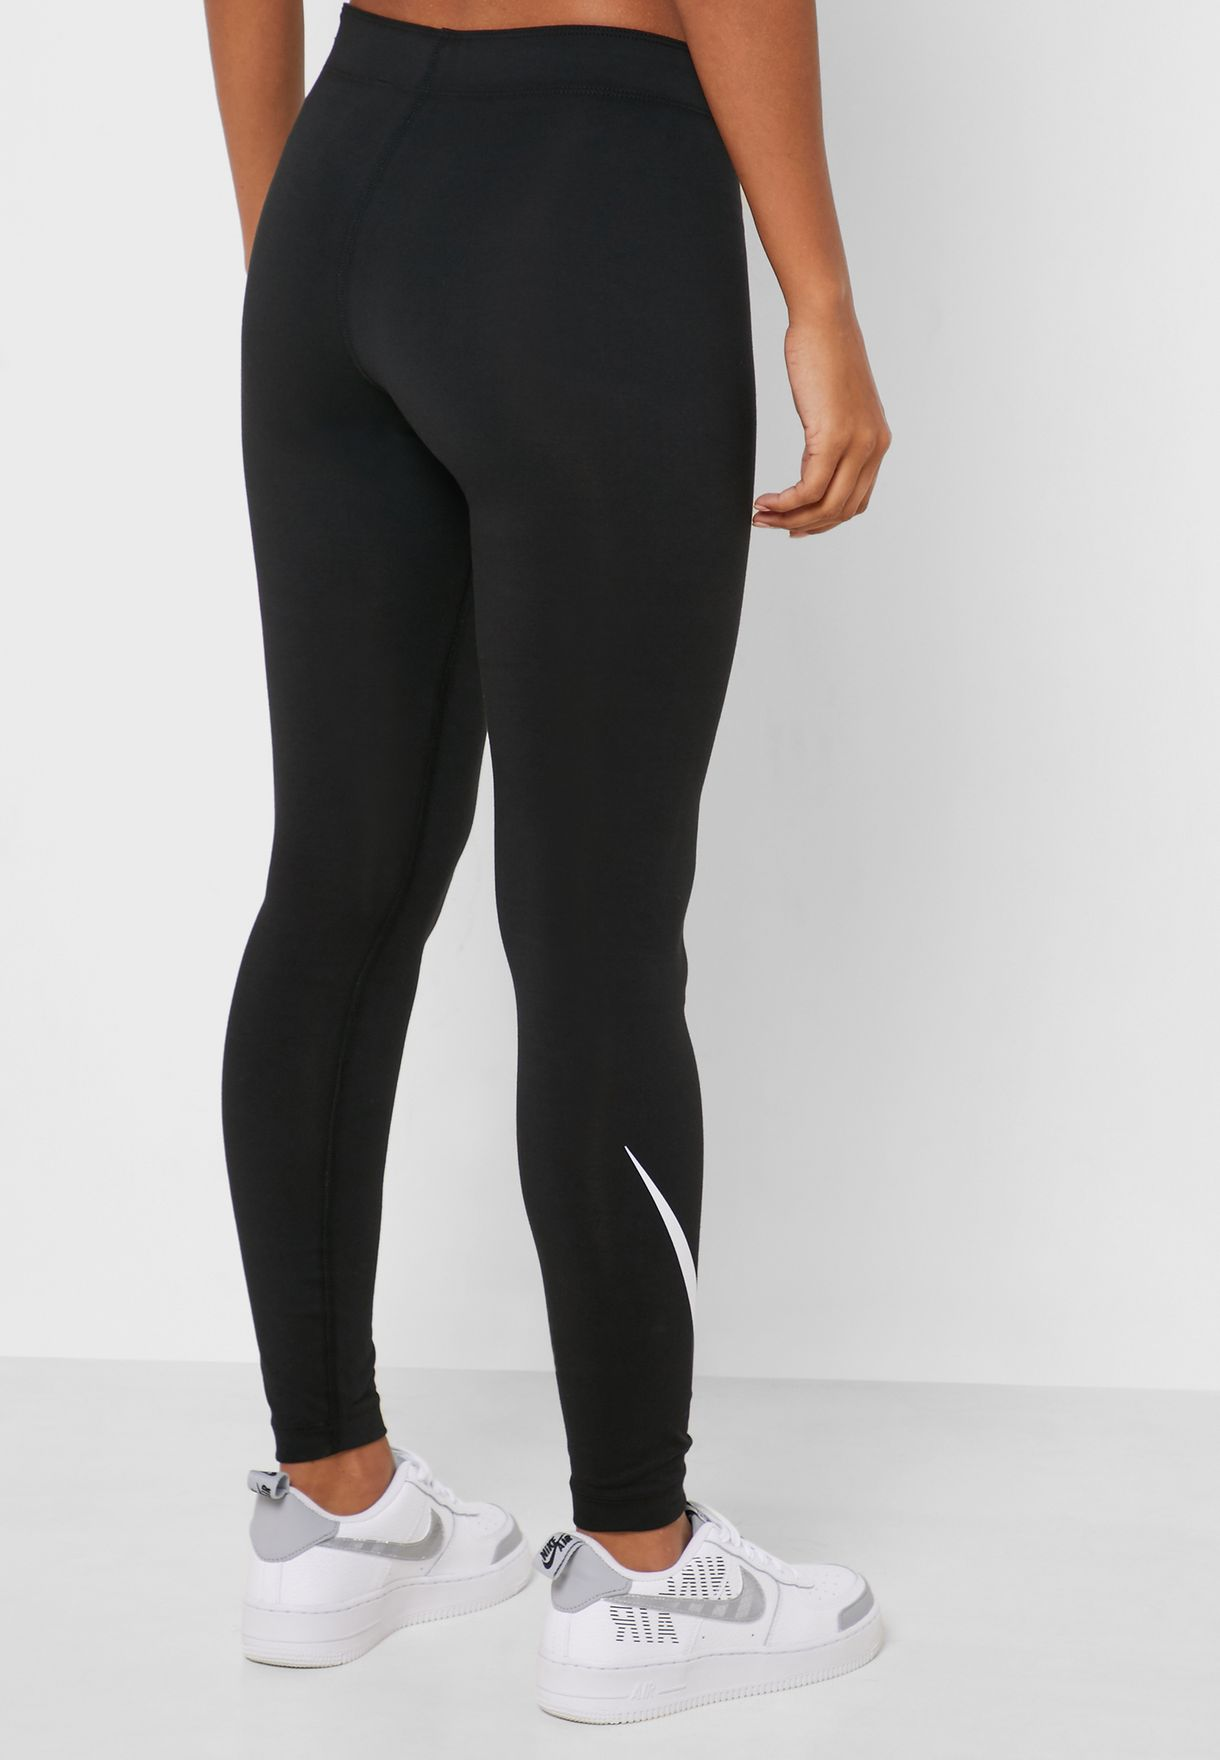 NSW Leg-A-See Swoosh Leggings